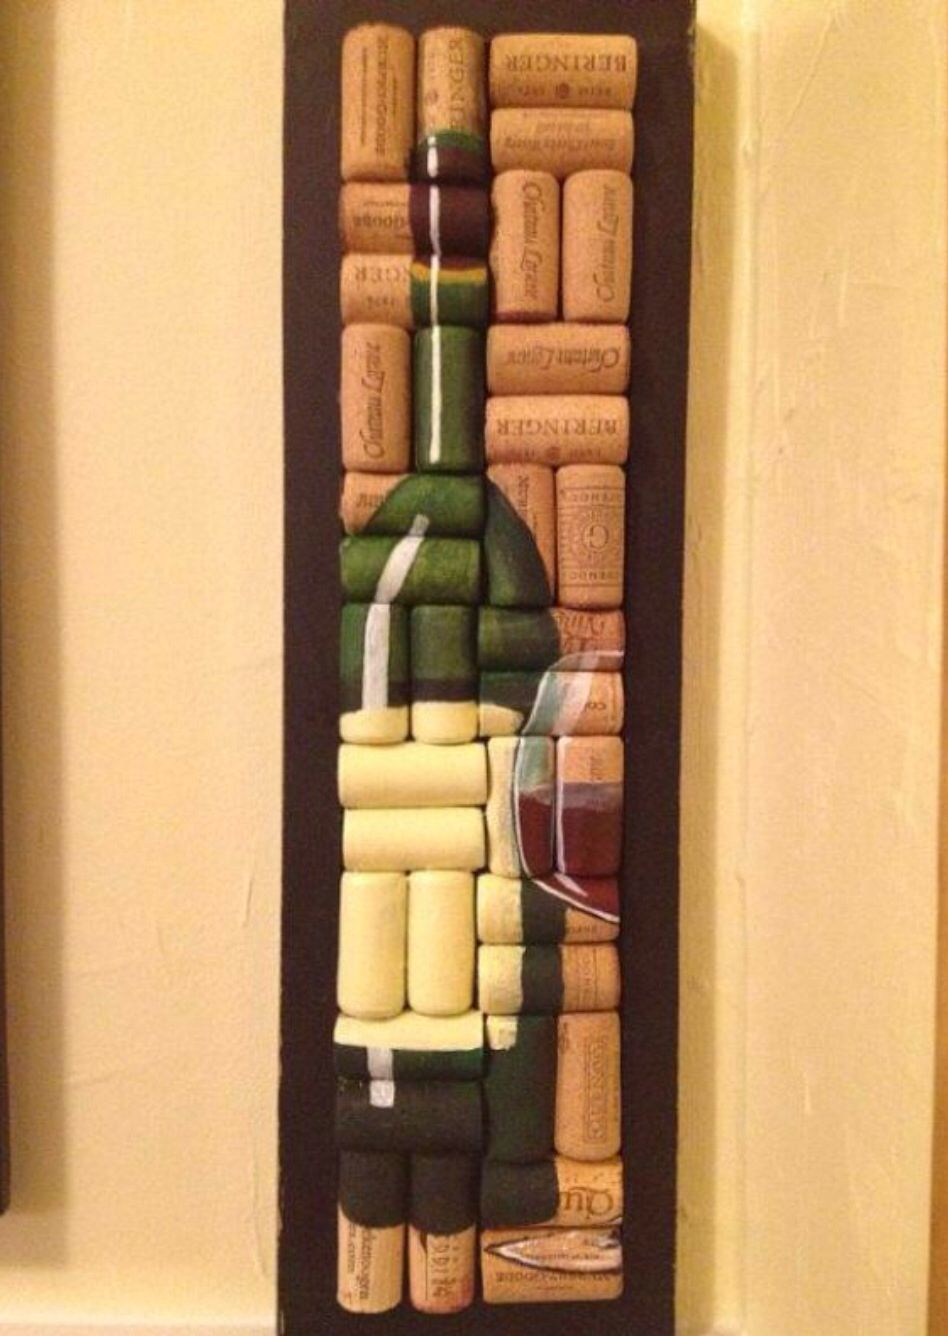 Painting on wine corks arts and crafts pinterest for Crafts to make with wine corks